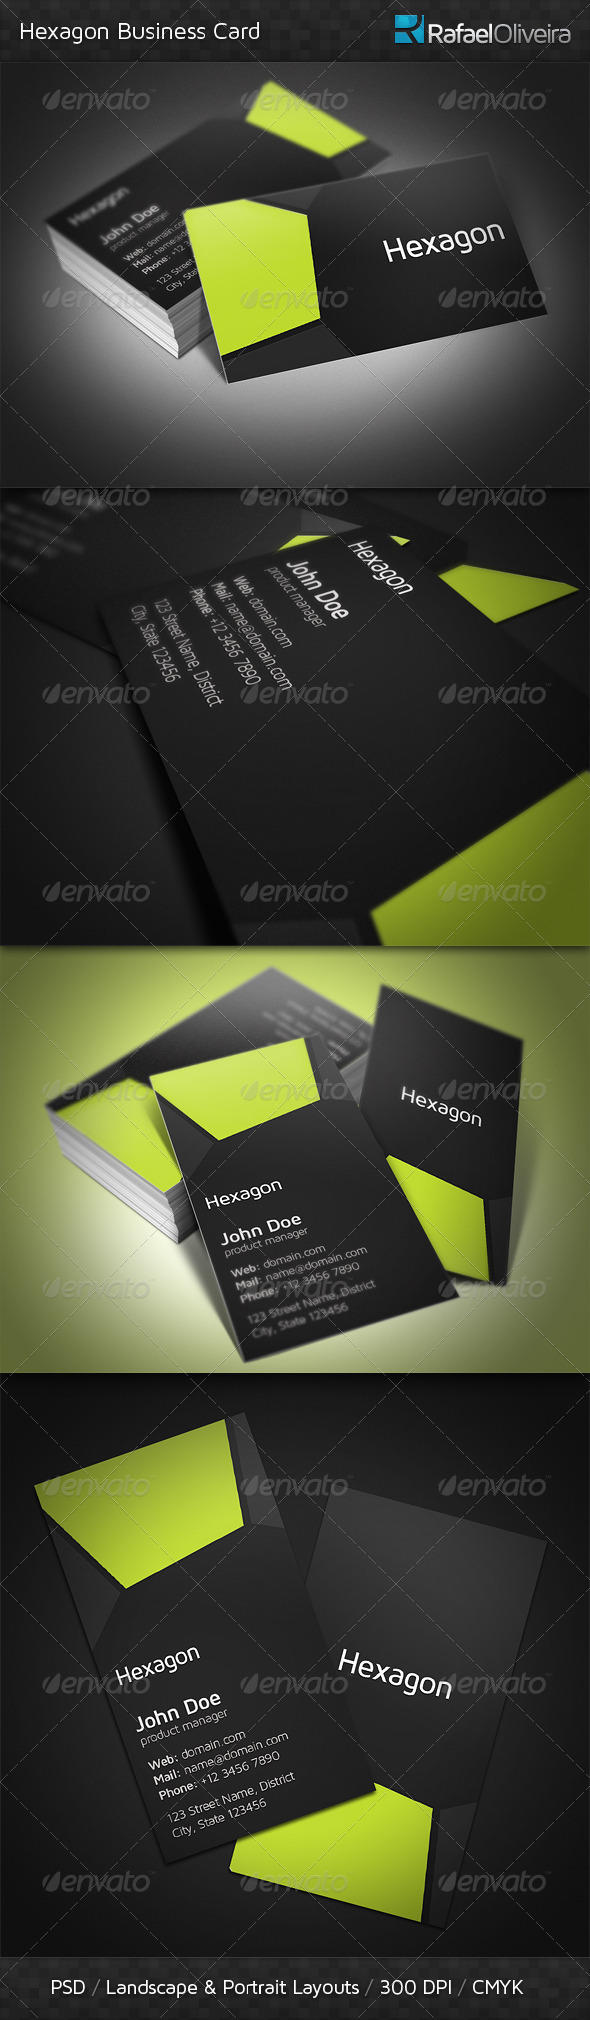 Hexagon Business Card - Corporate Business Cards